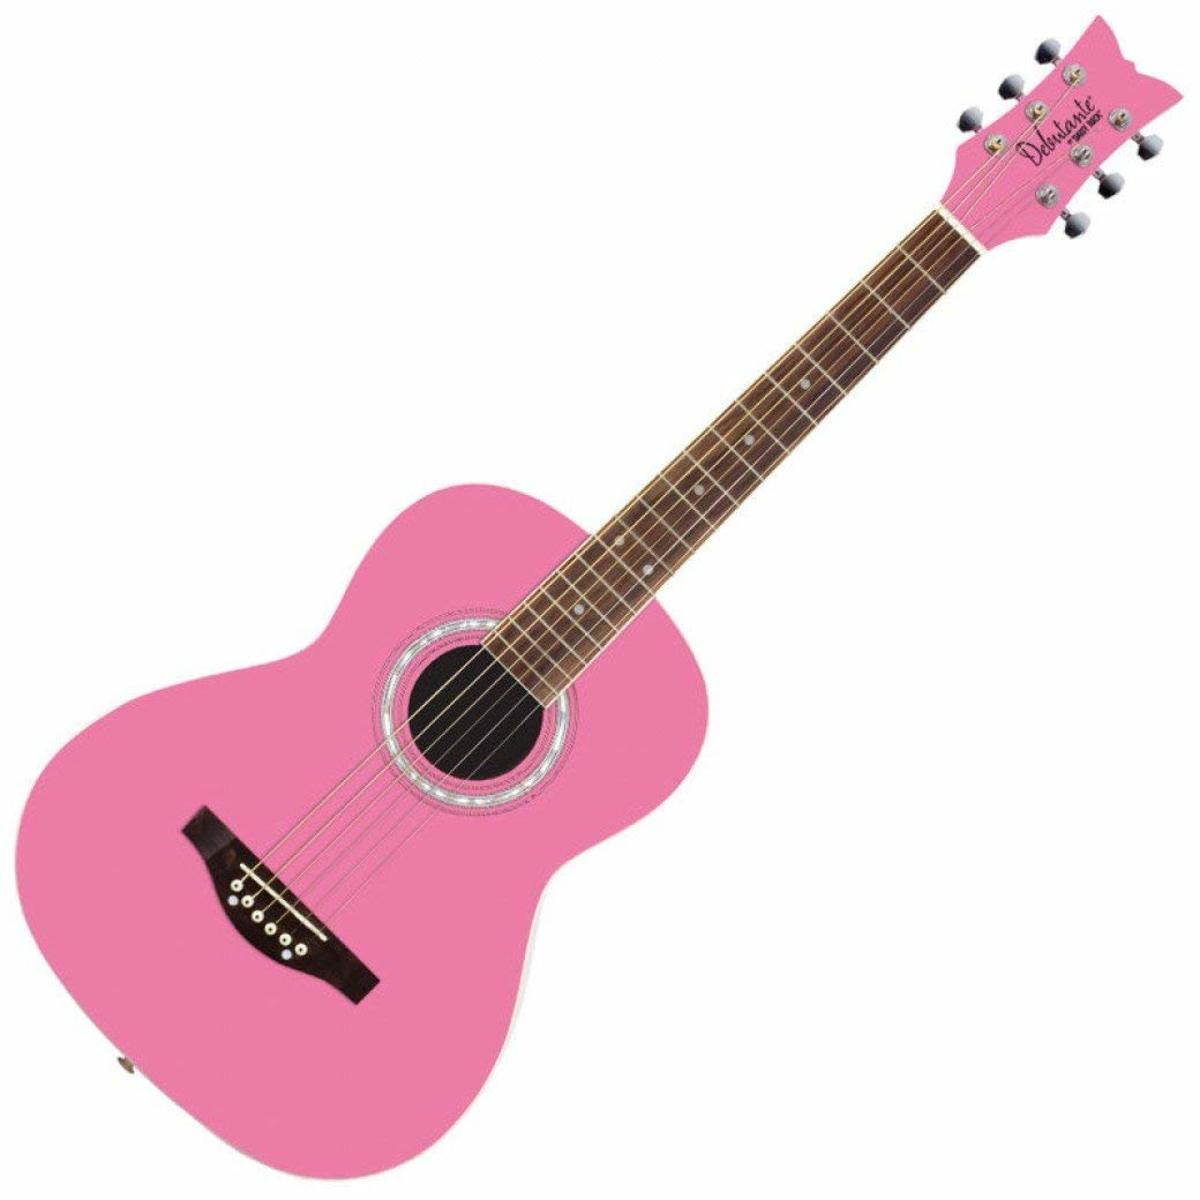 best beginner guitars for girls spinditty. Black Bedroom Furniture Sets. Home Design Ideas